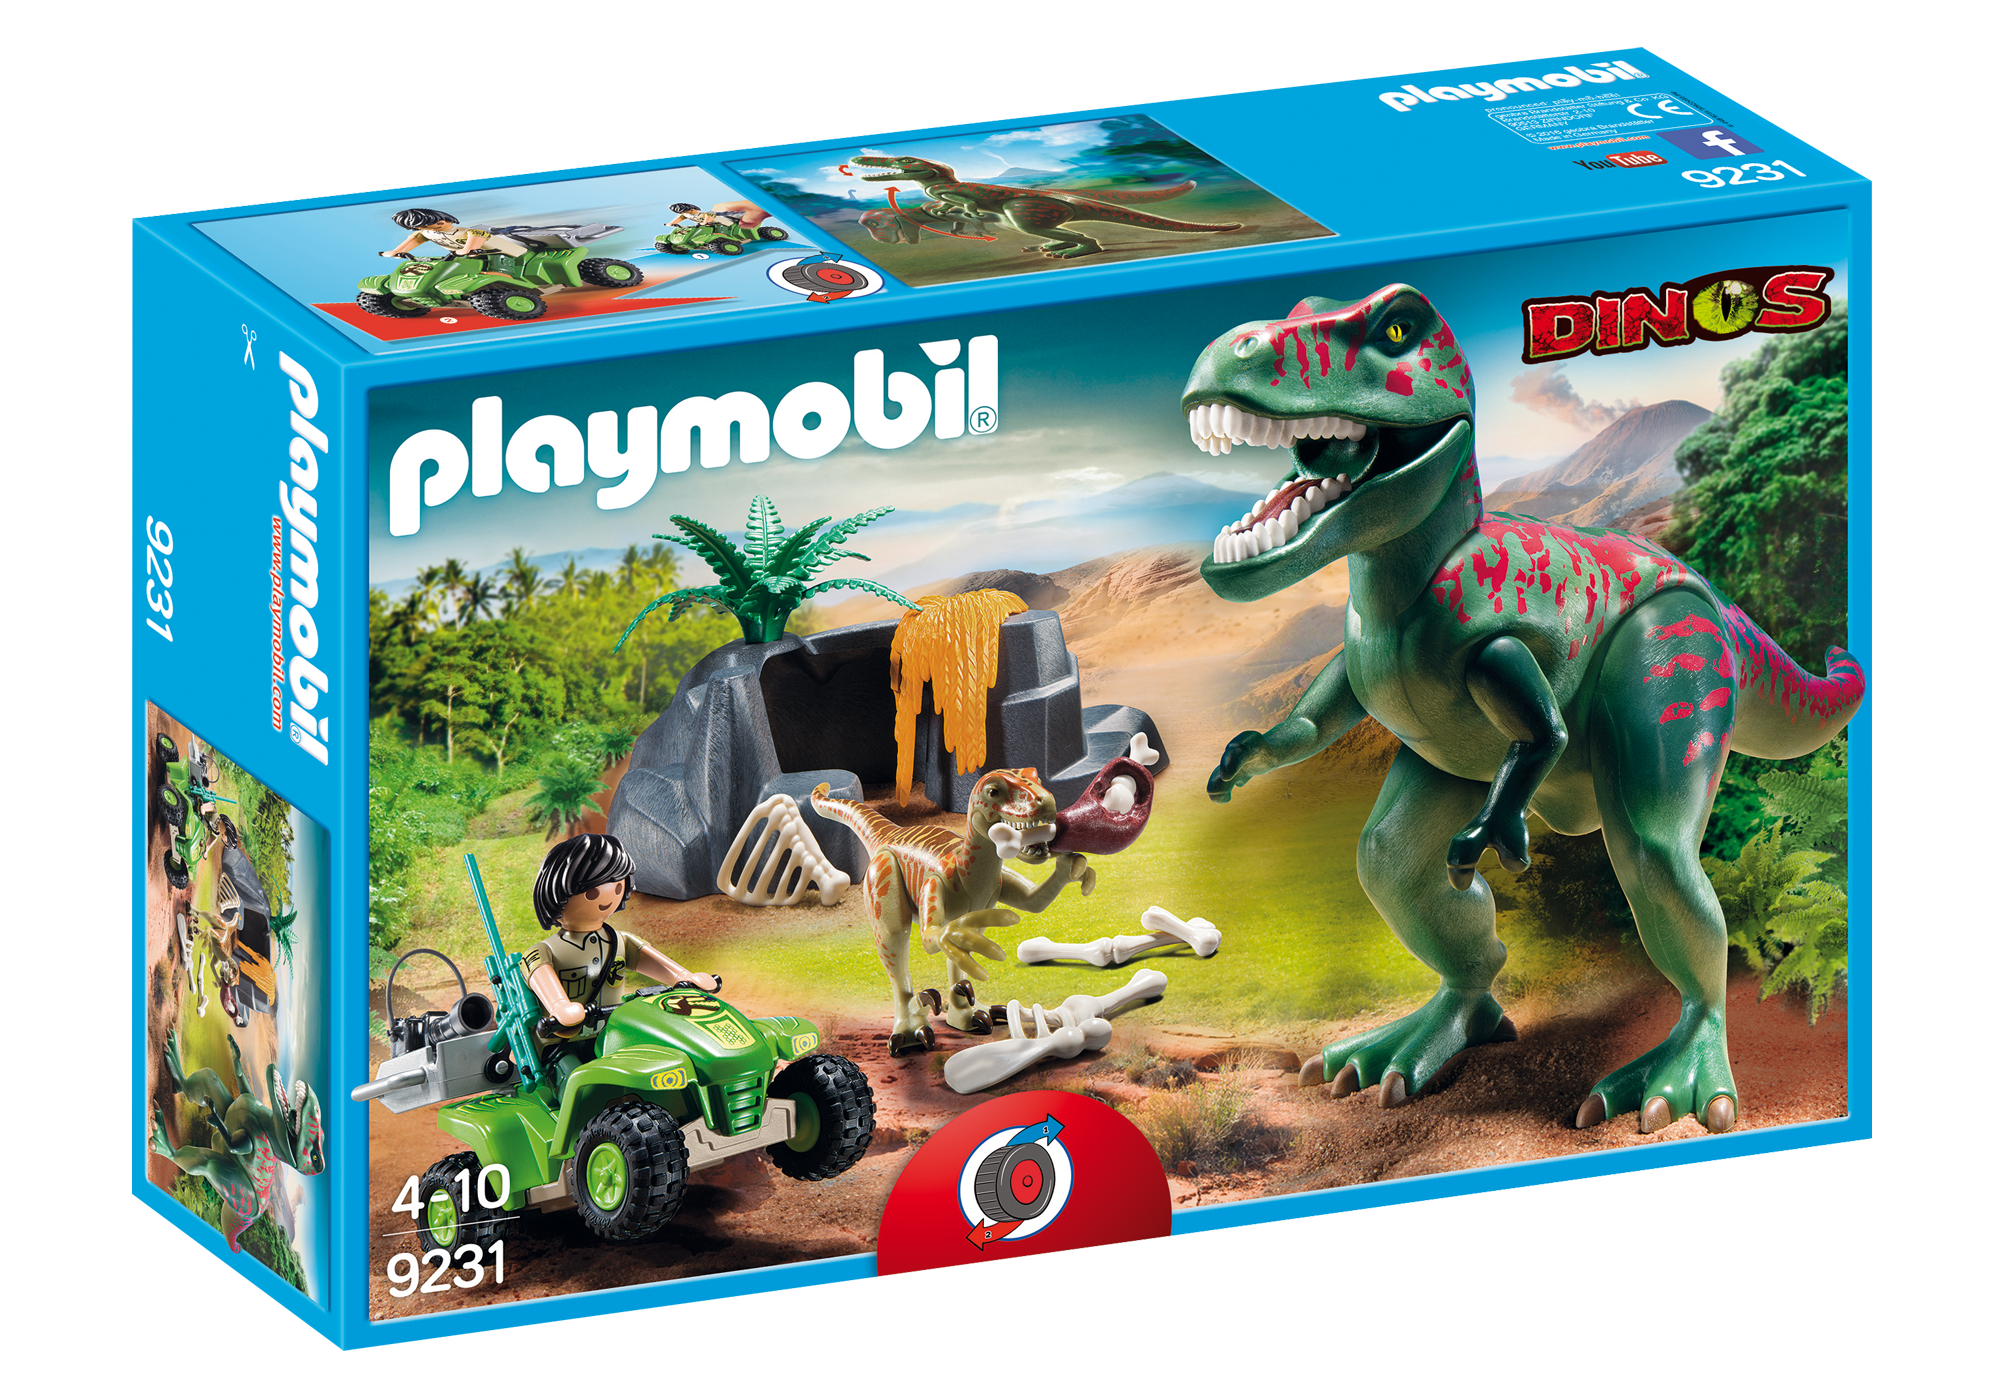 http://media.playmobil.com/i/playmobil/9231_product_box_front